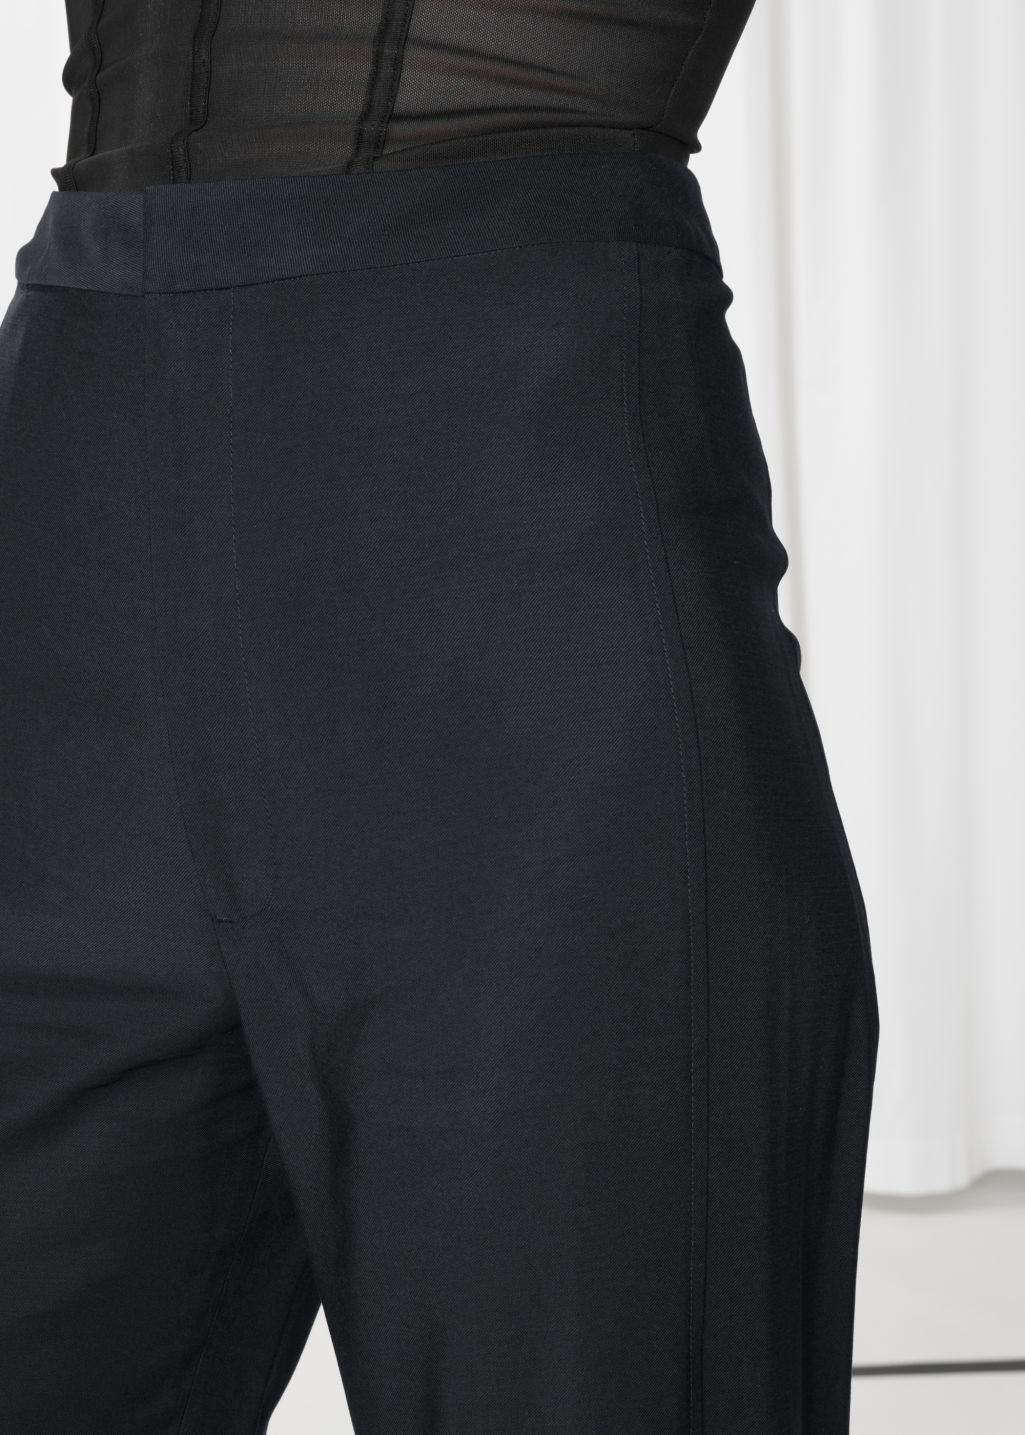 Detailed image of Stories front slit flare trousers in black